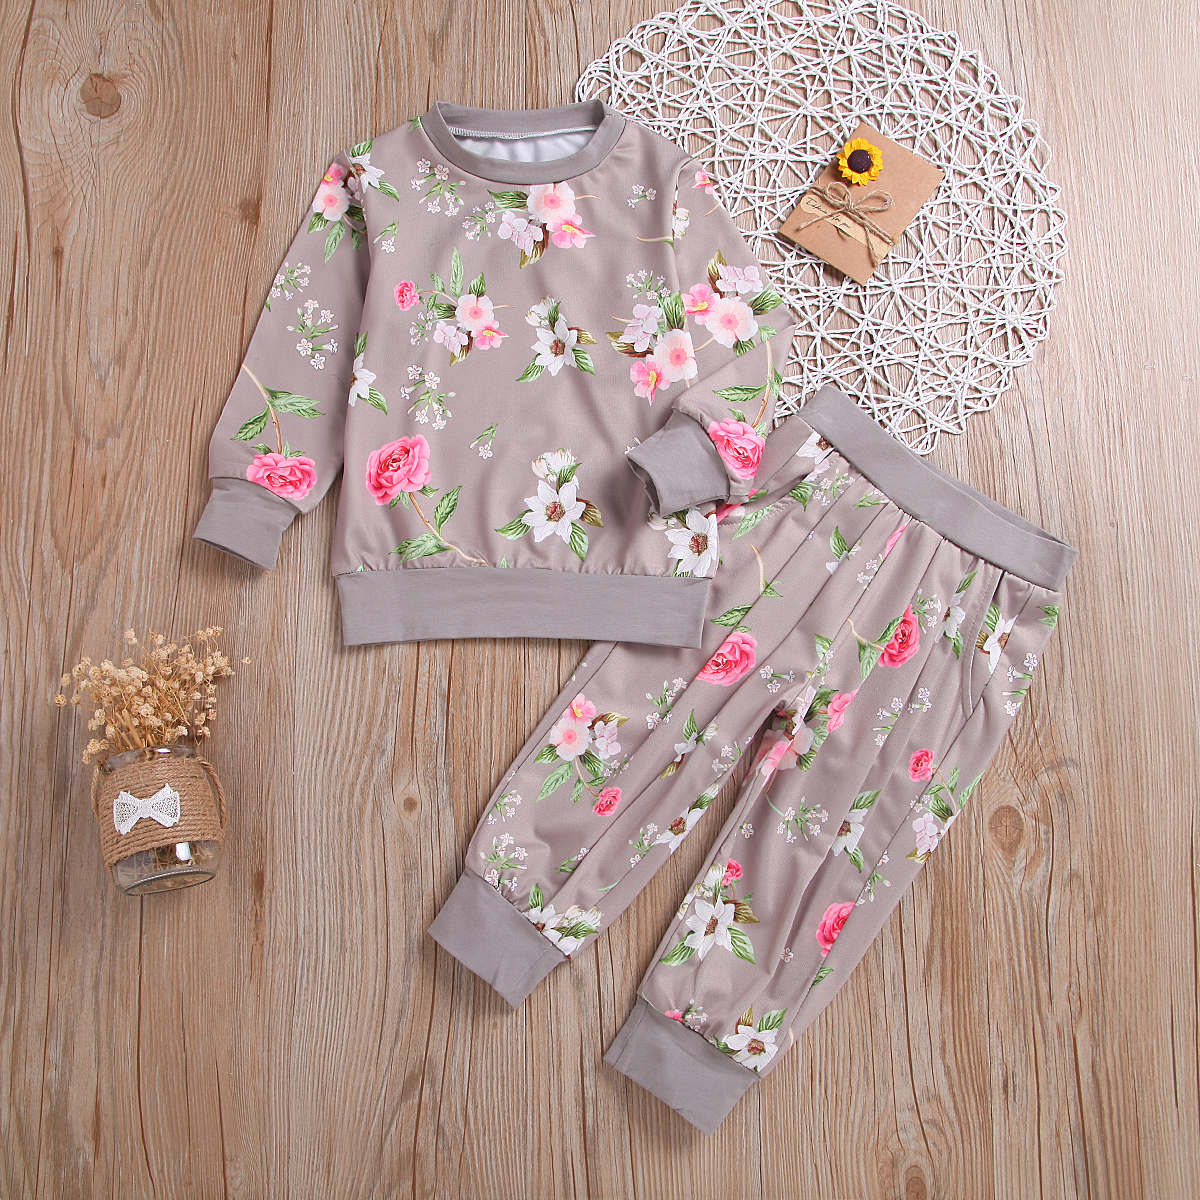 Baby / Toddler Floral Allover Top and pants Set